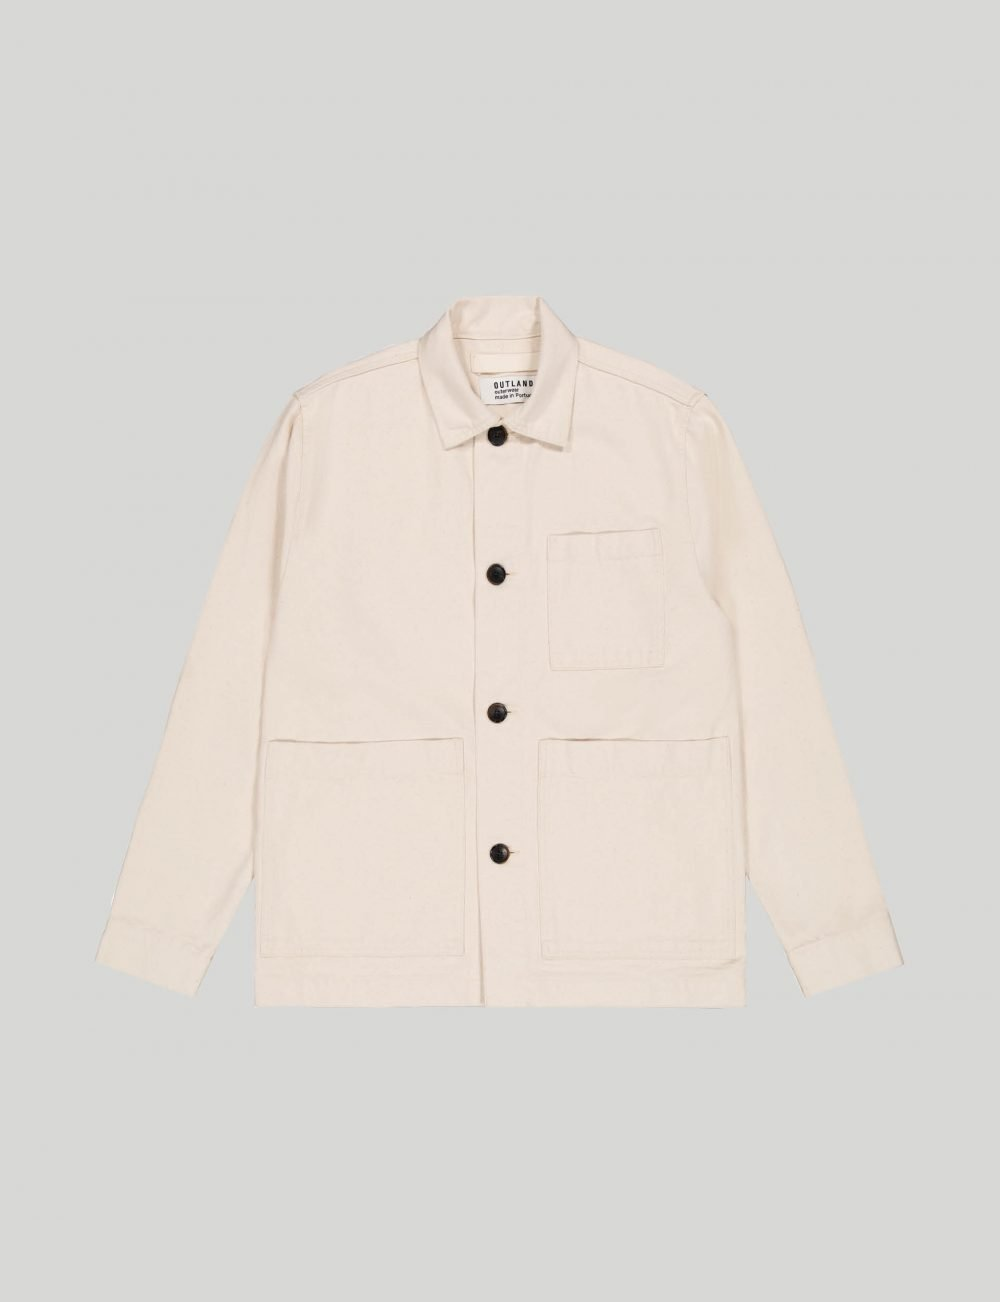 Outland - Castart - Dubliner twill overshirt - Off-white